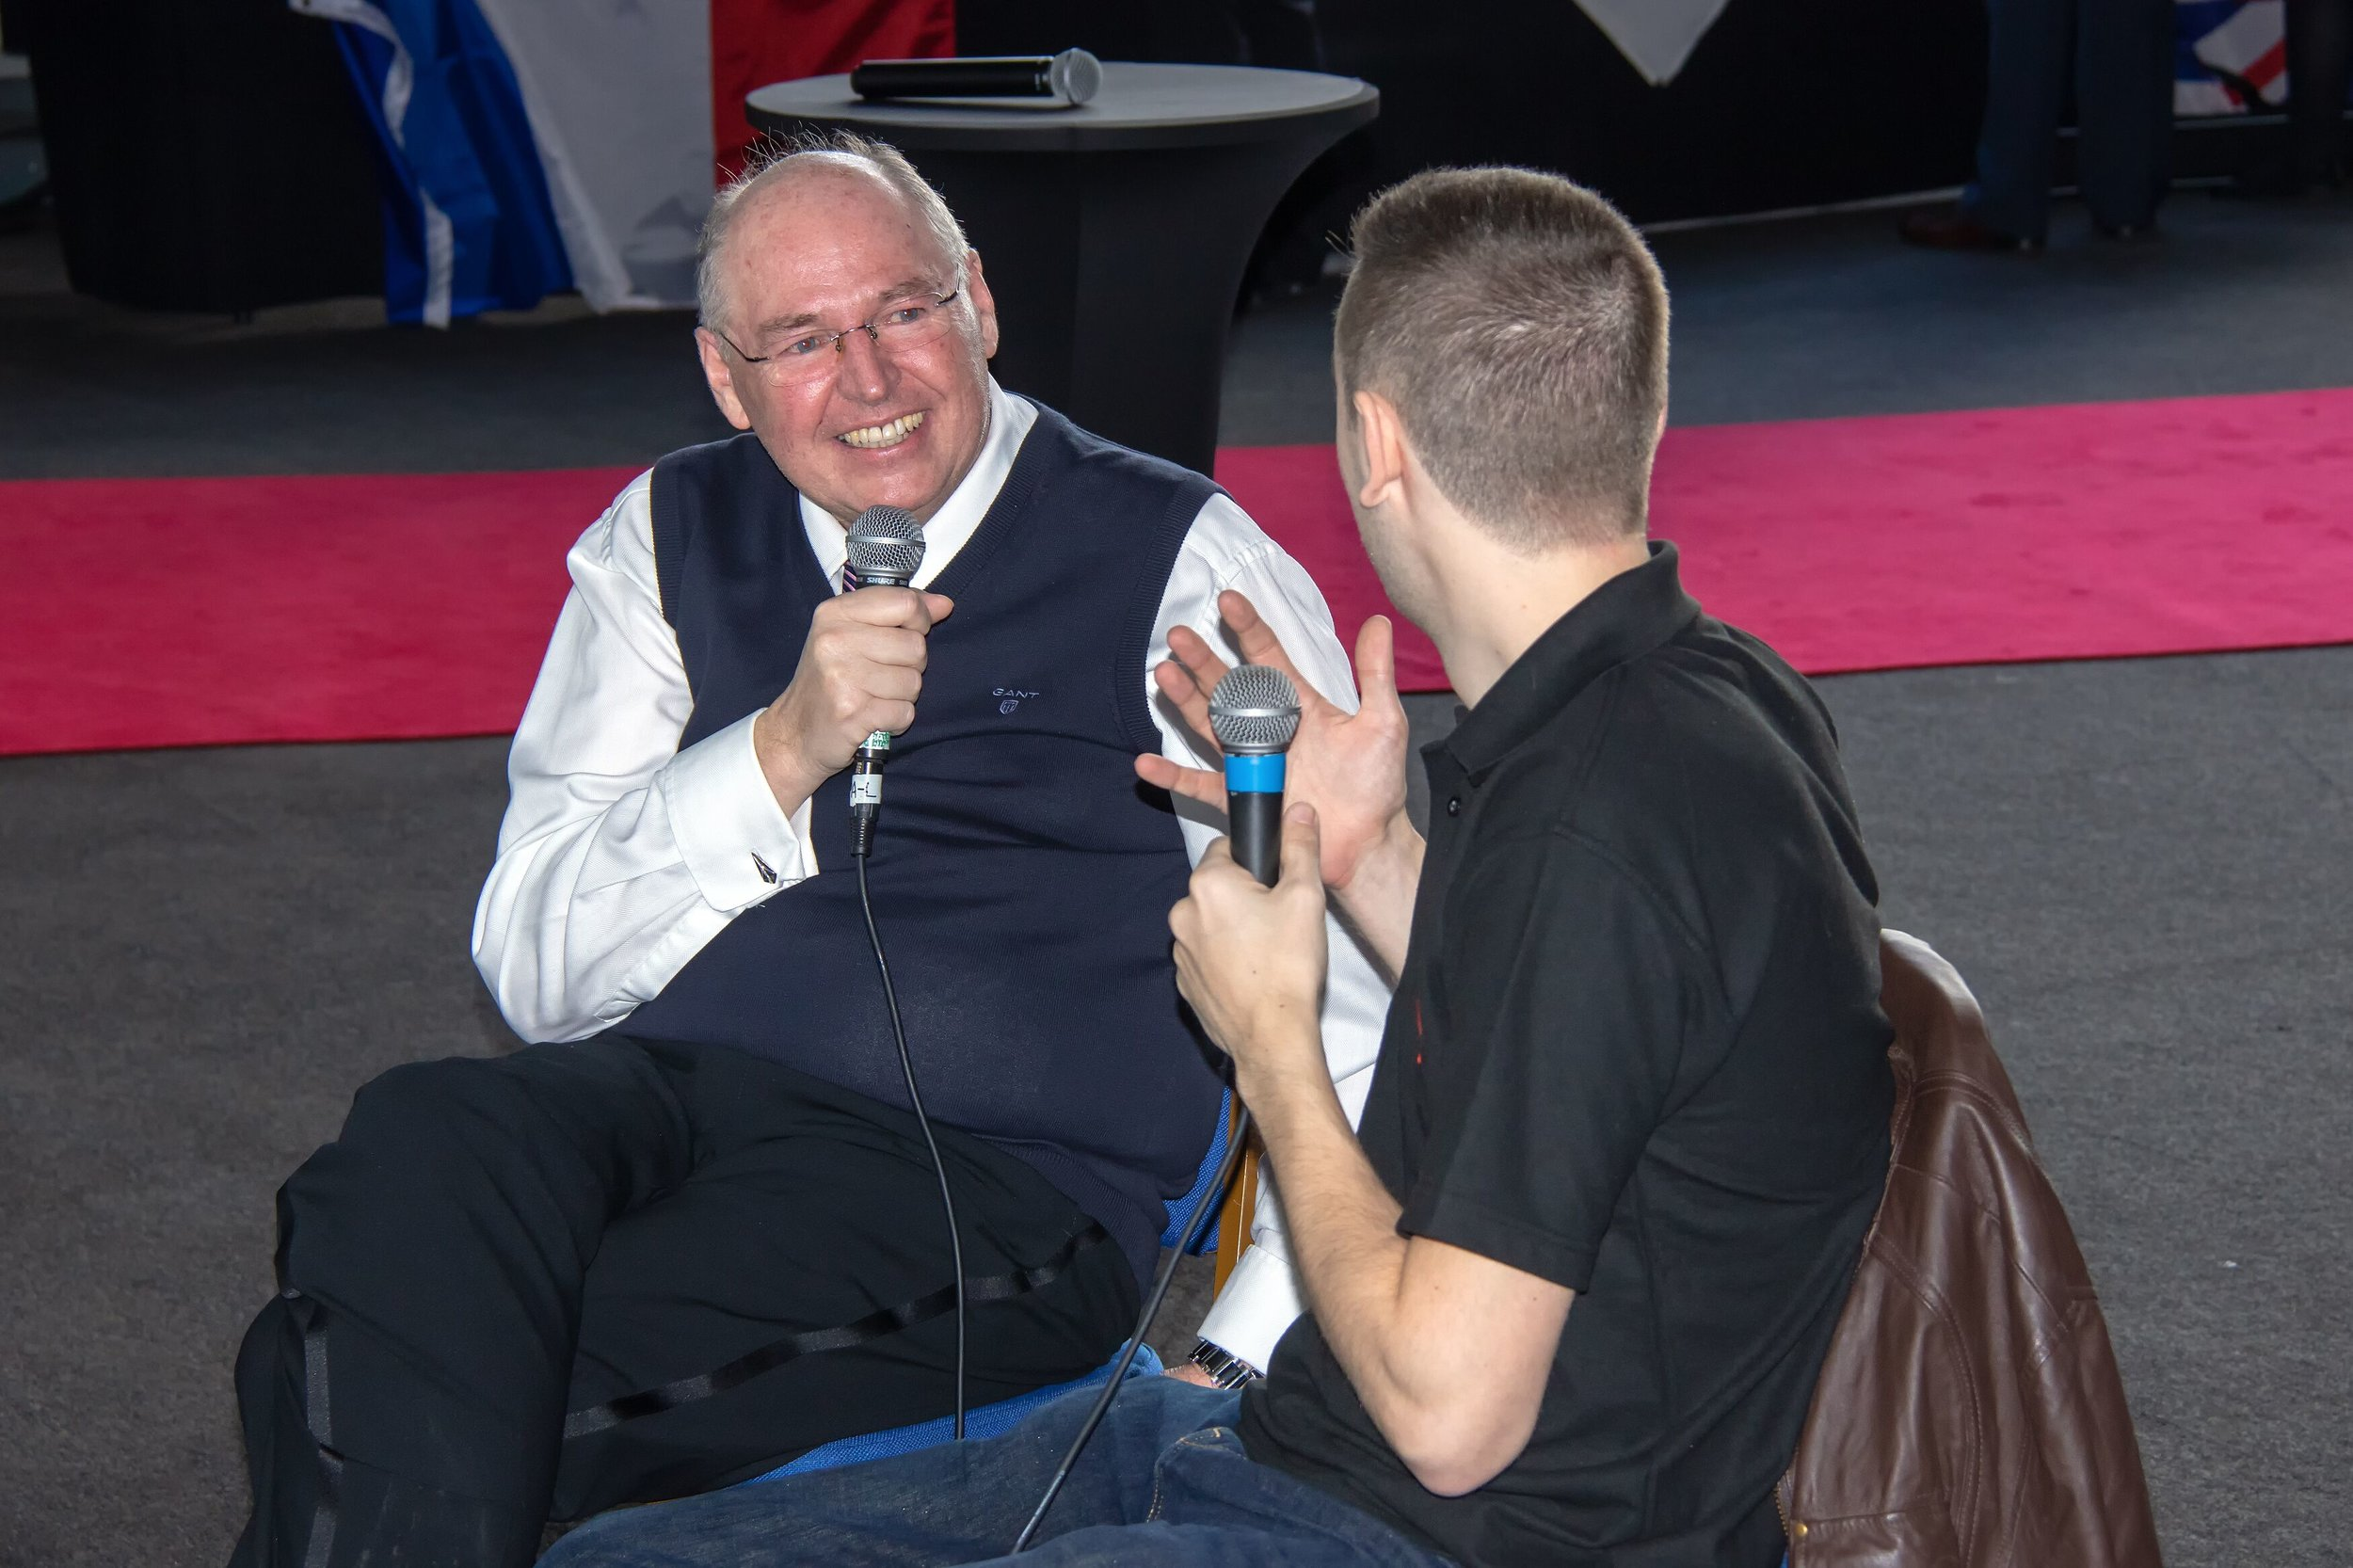 TAS Chairman, Peter Hampson (left) was MC for the event and is pictured being interviewed by Martin from Airliners Live TV.